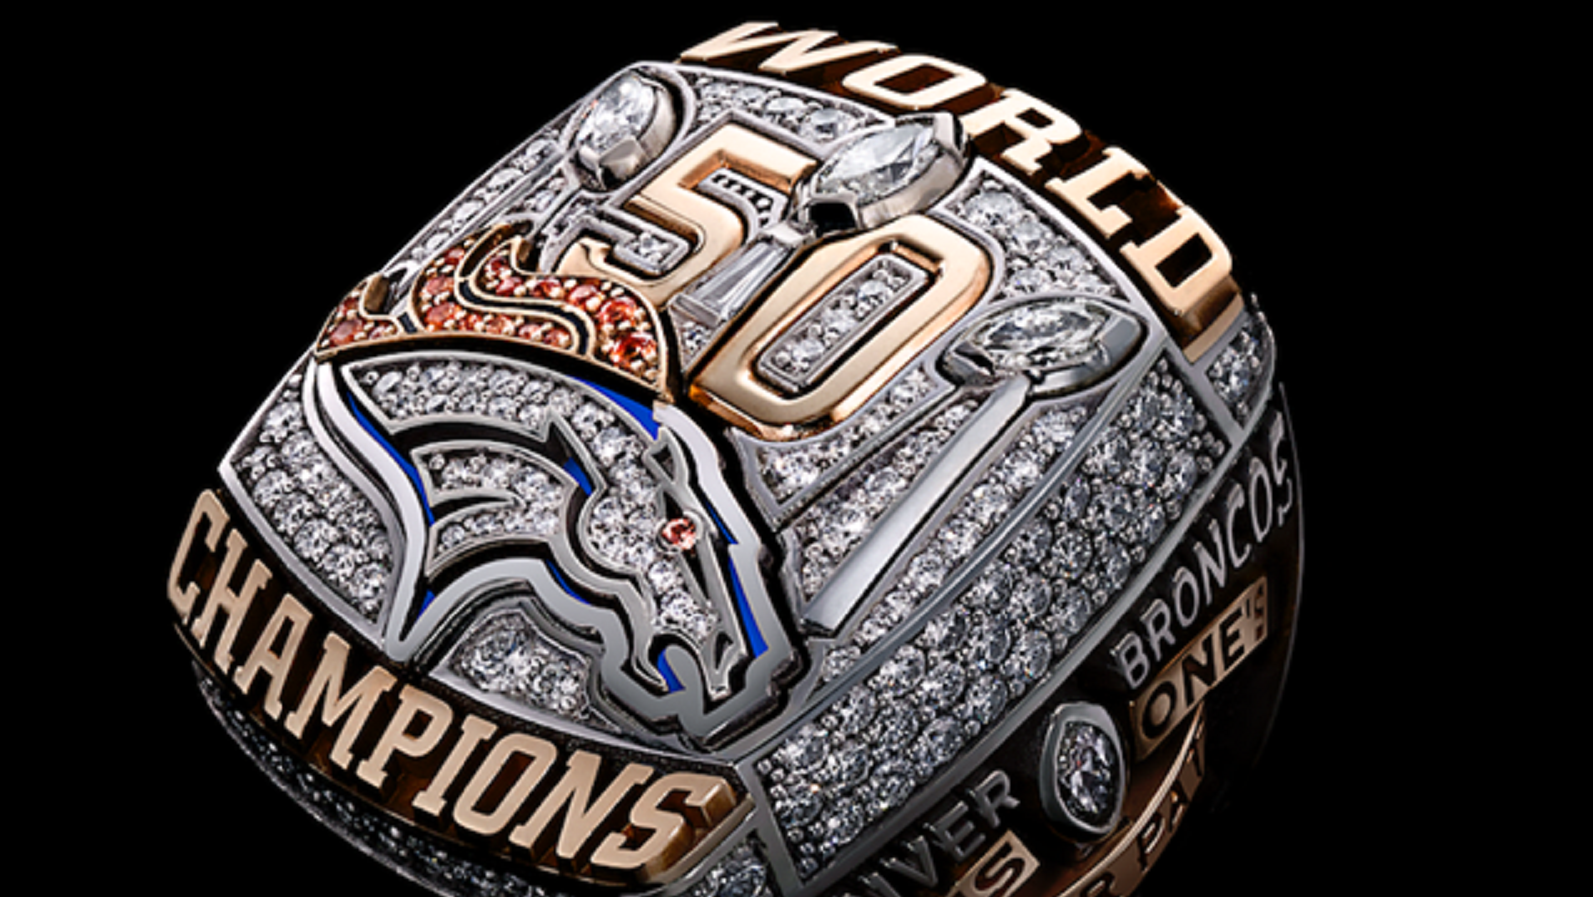 encrusted rings bowl diamond gallery fox all nfl broncos sports super pictures in ring their glory of